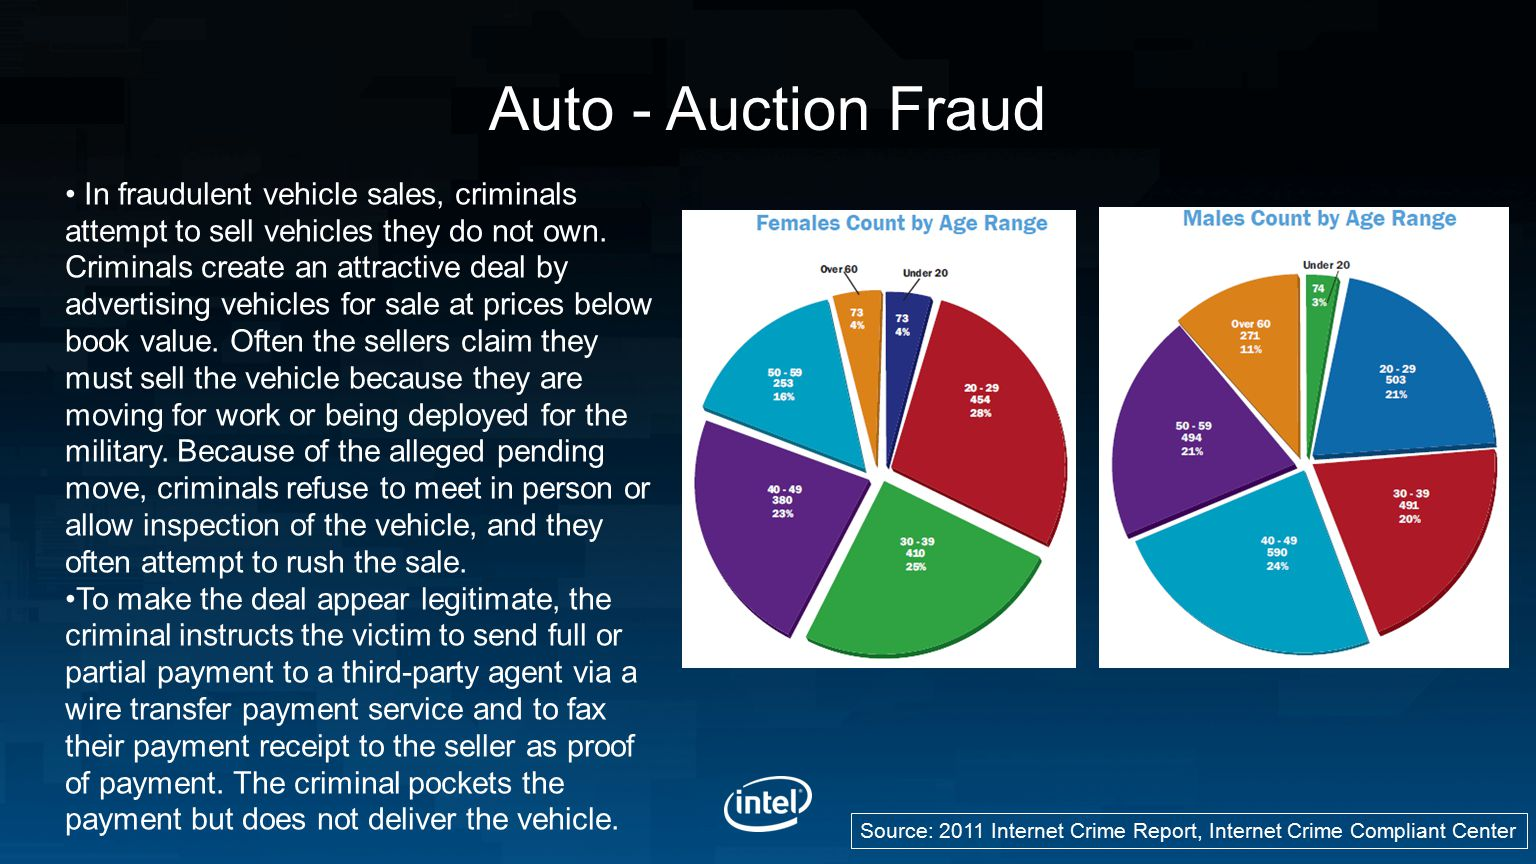 Auto - Auction Fraud Source: 2011 Internet Crime Report, Internet Crime Compliant Center In fraudulent vehicle sales, criminals attempt to sell vehicles they do not own.